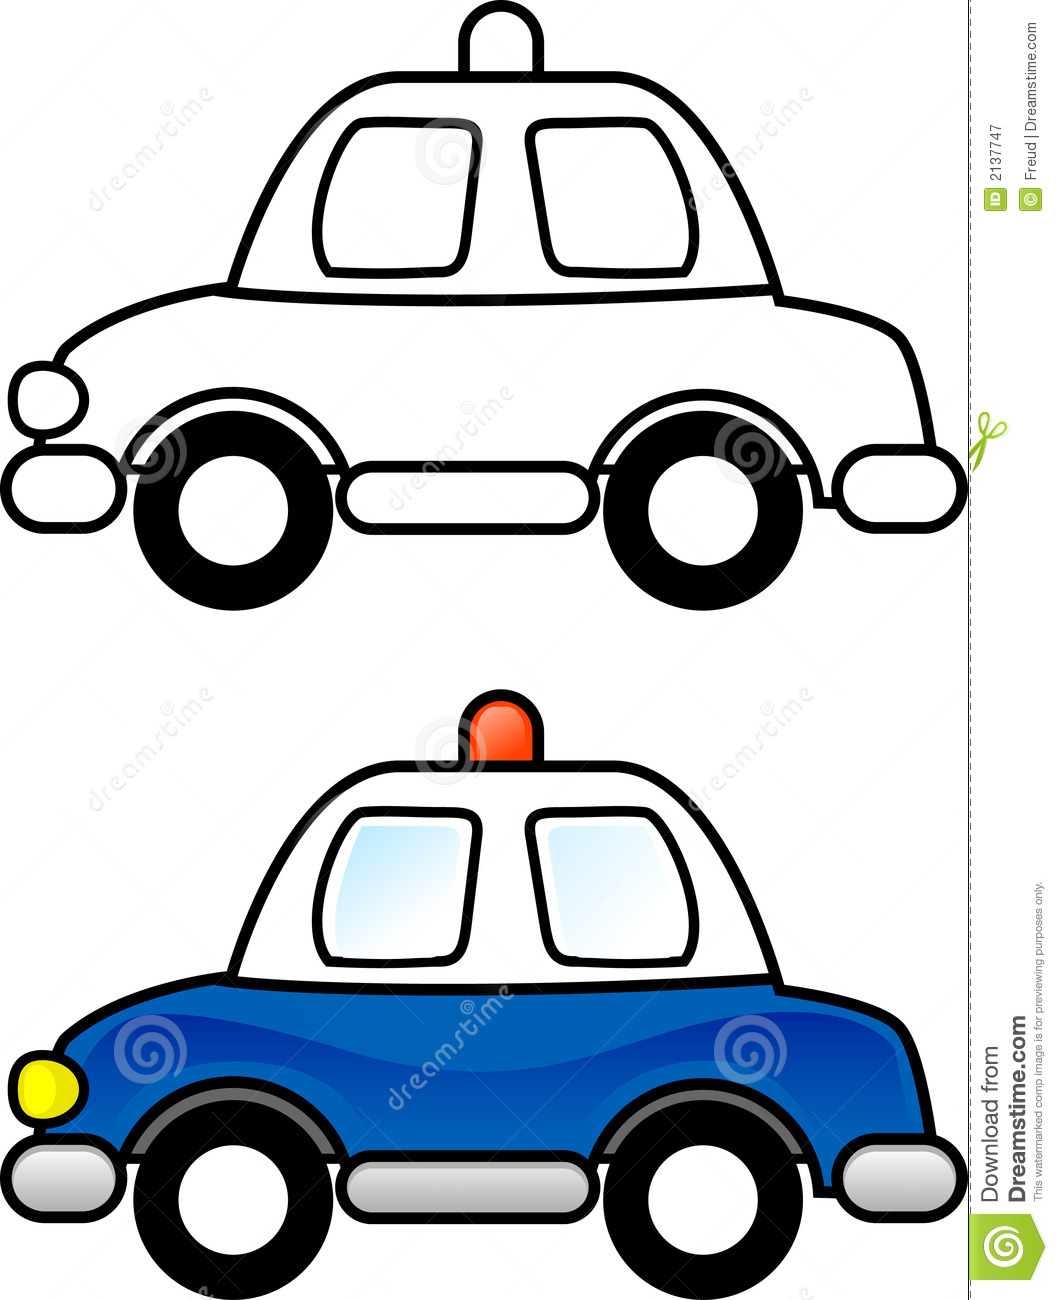 Police Officer Badge Clipart Police Car Clipart Police Car 2137747 Jpg